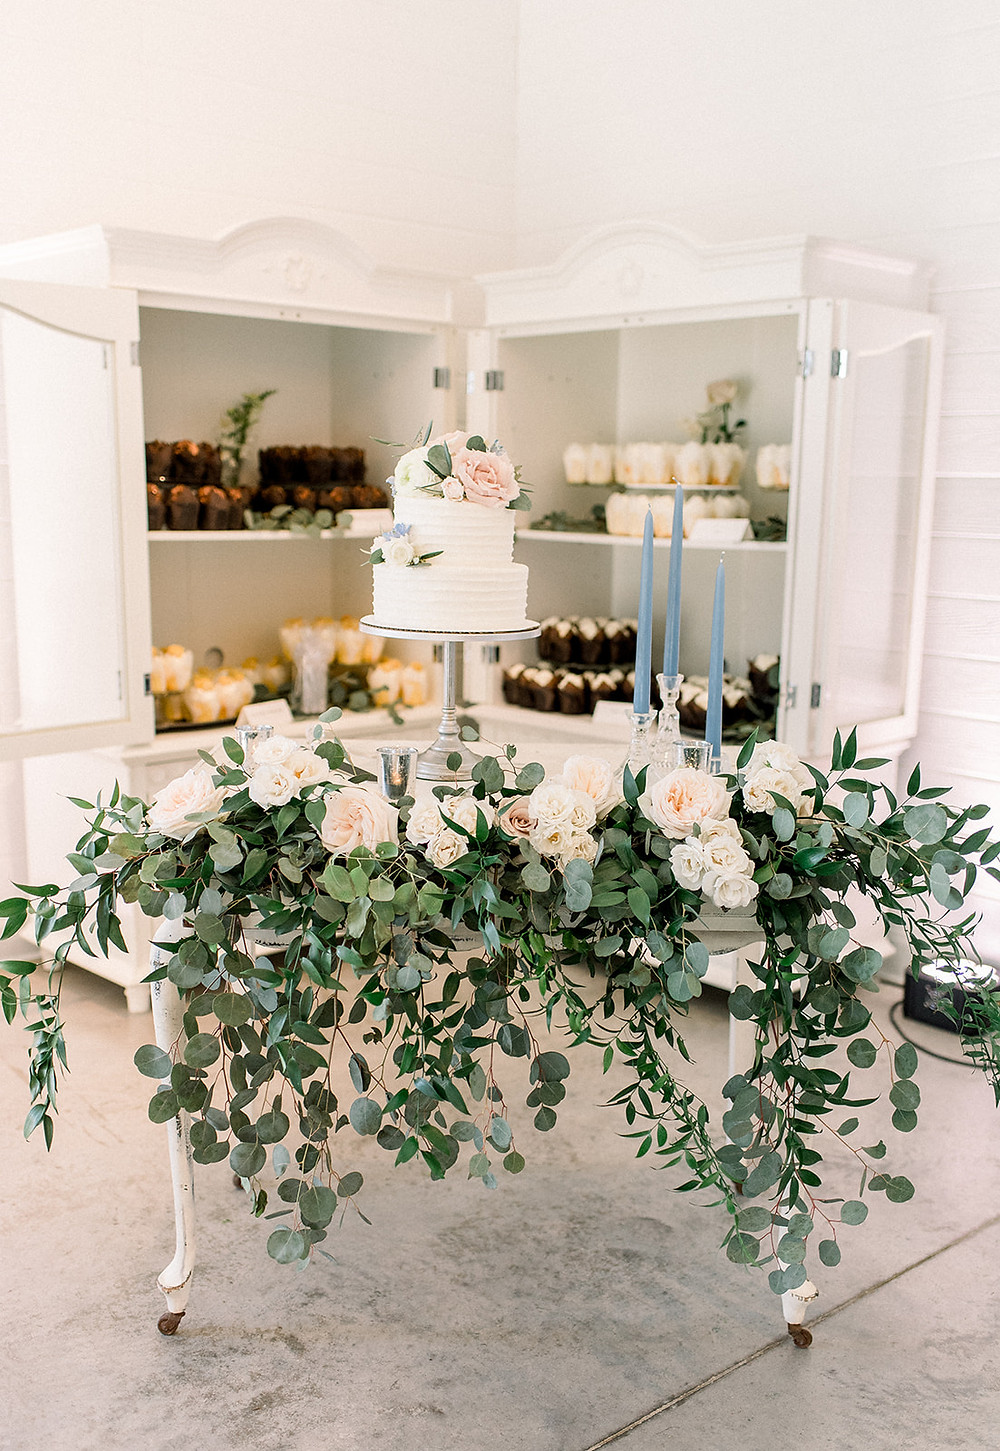 Wedding cake display at Ashton Hill Cedar Rapids with draping greenery and rose arrangement by Studio Bloom Iowa on vanity